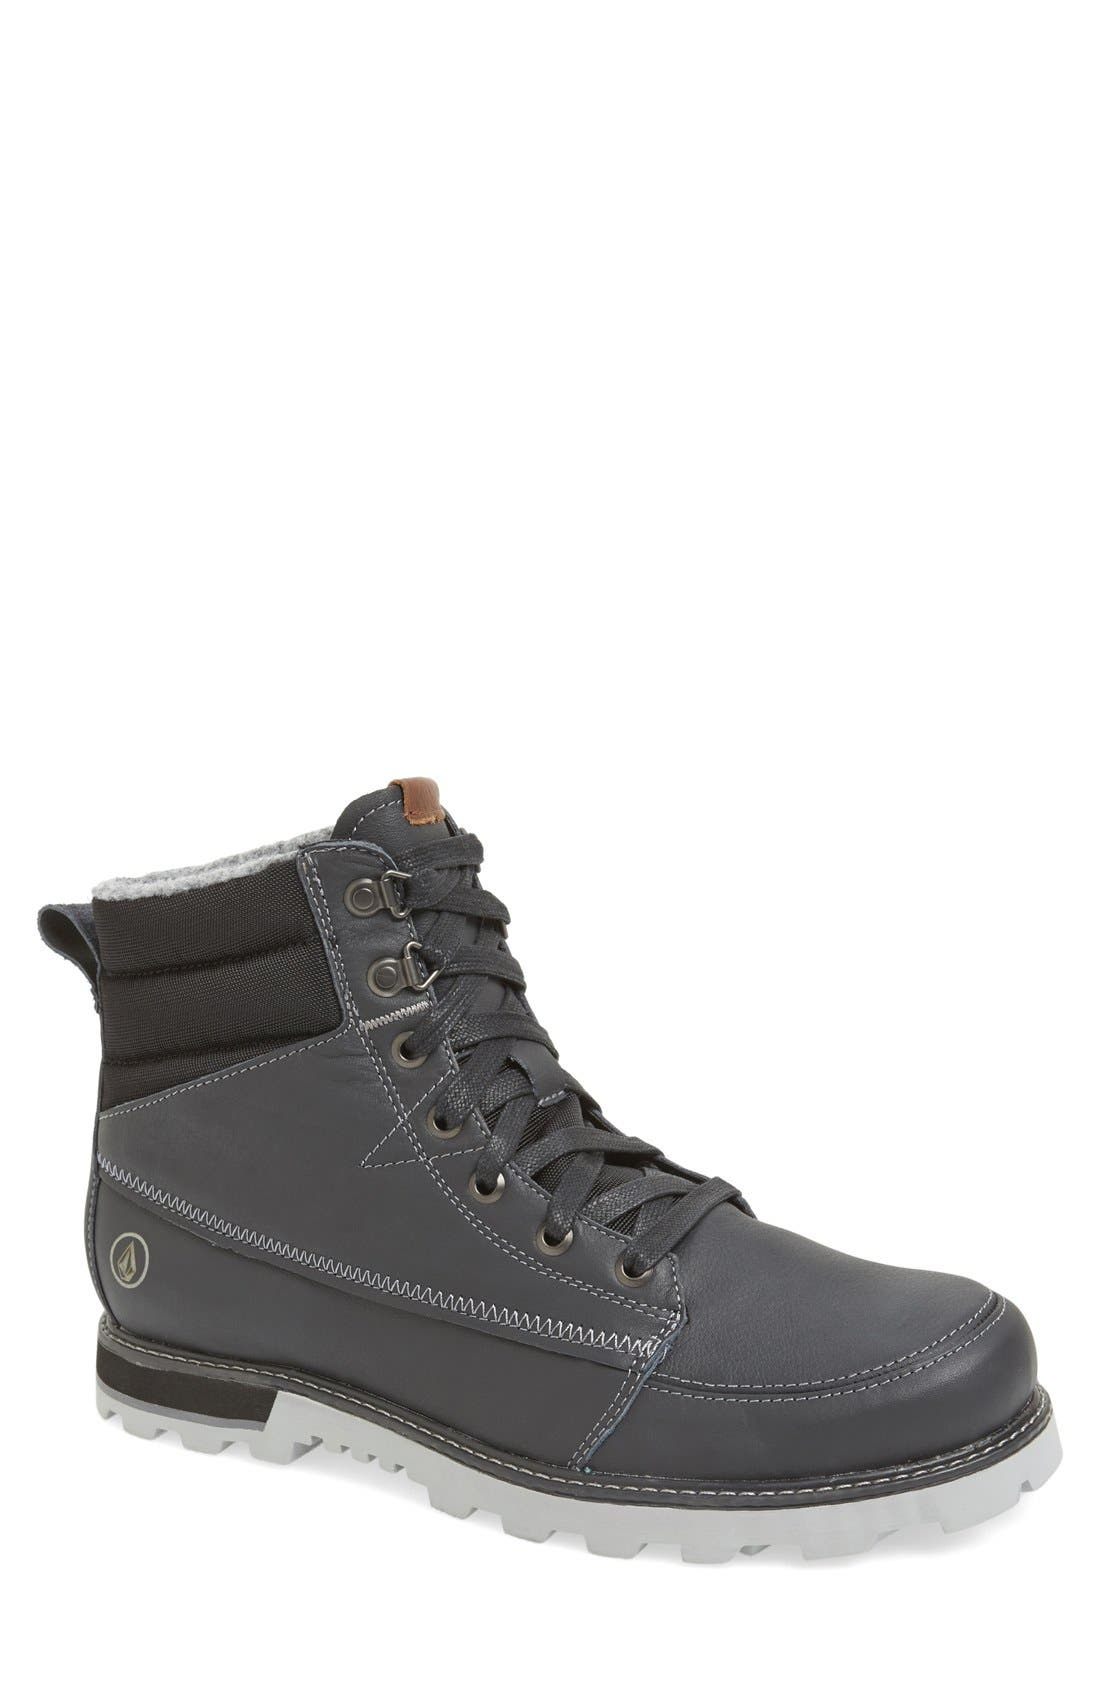 'Sub Zero' Suede Boot,                             Main thumbnail 1, color,                             025